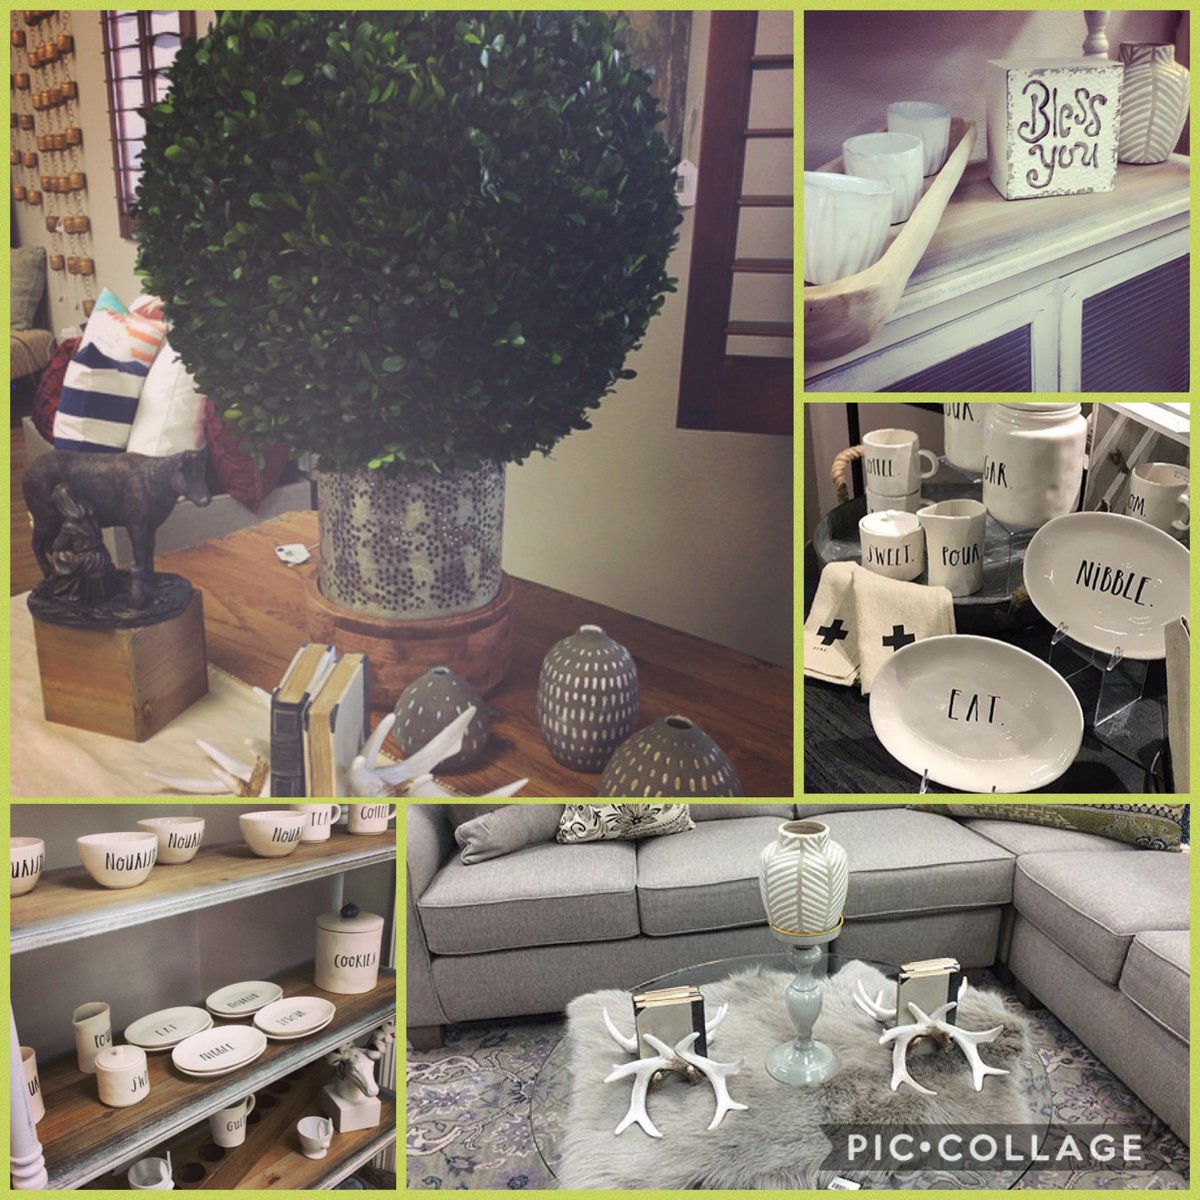 Bandelera Boutique On Twitter Daily Deal Today Is Rae Dunn And Home Decor Stop In Today And Receive 30 Off Any Home Decor Or Rae Dunn Pieces Don T Miss The Opportunity To